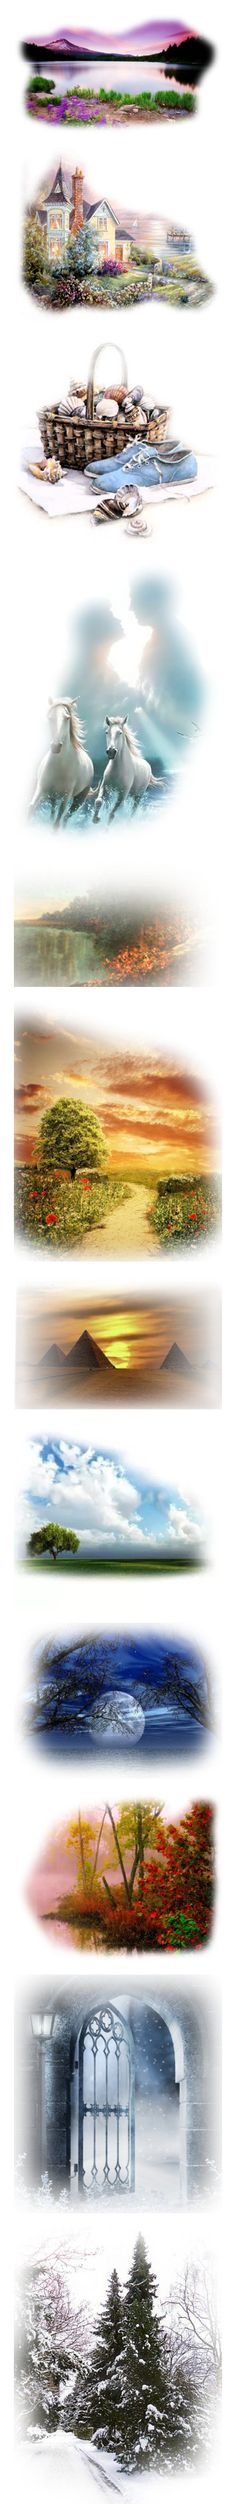 """""""fades for sets 2"""" by pokeasaurousrex ❤ liked on Polyvore featuring backgrounds, christmas, tubes, beach, fillers, flowers, effect, scenery, horses and animals"""